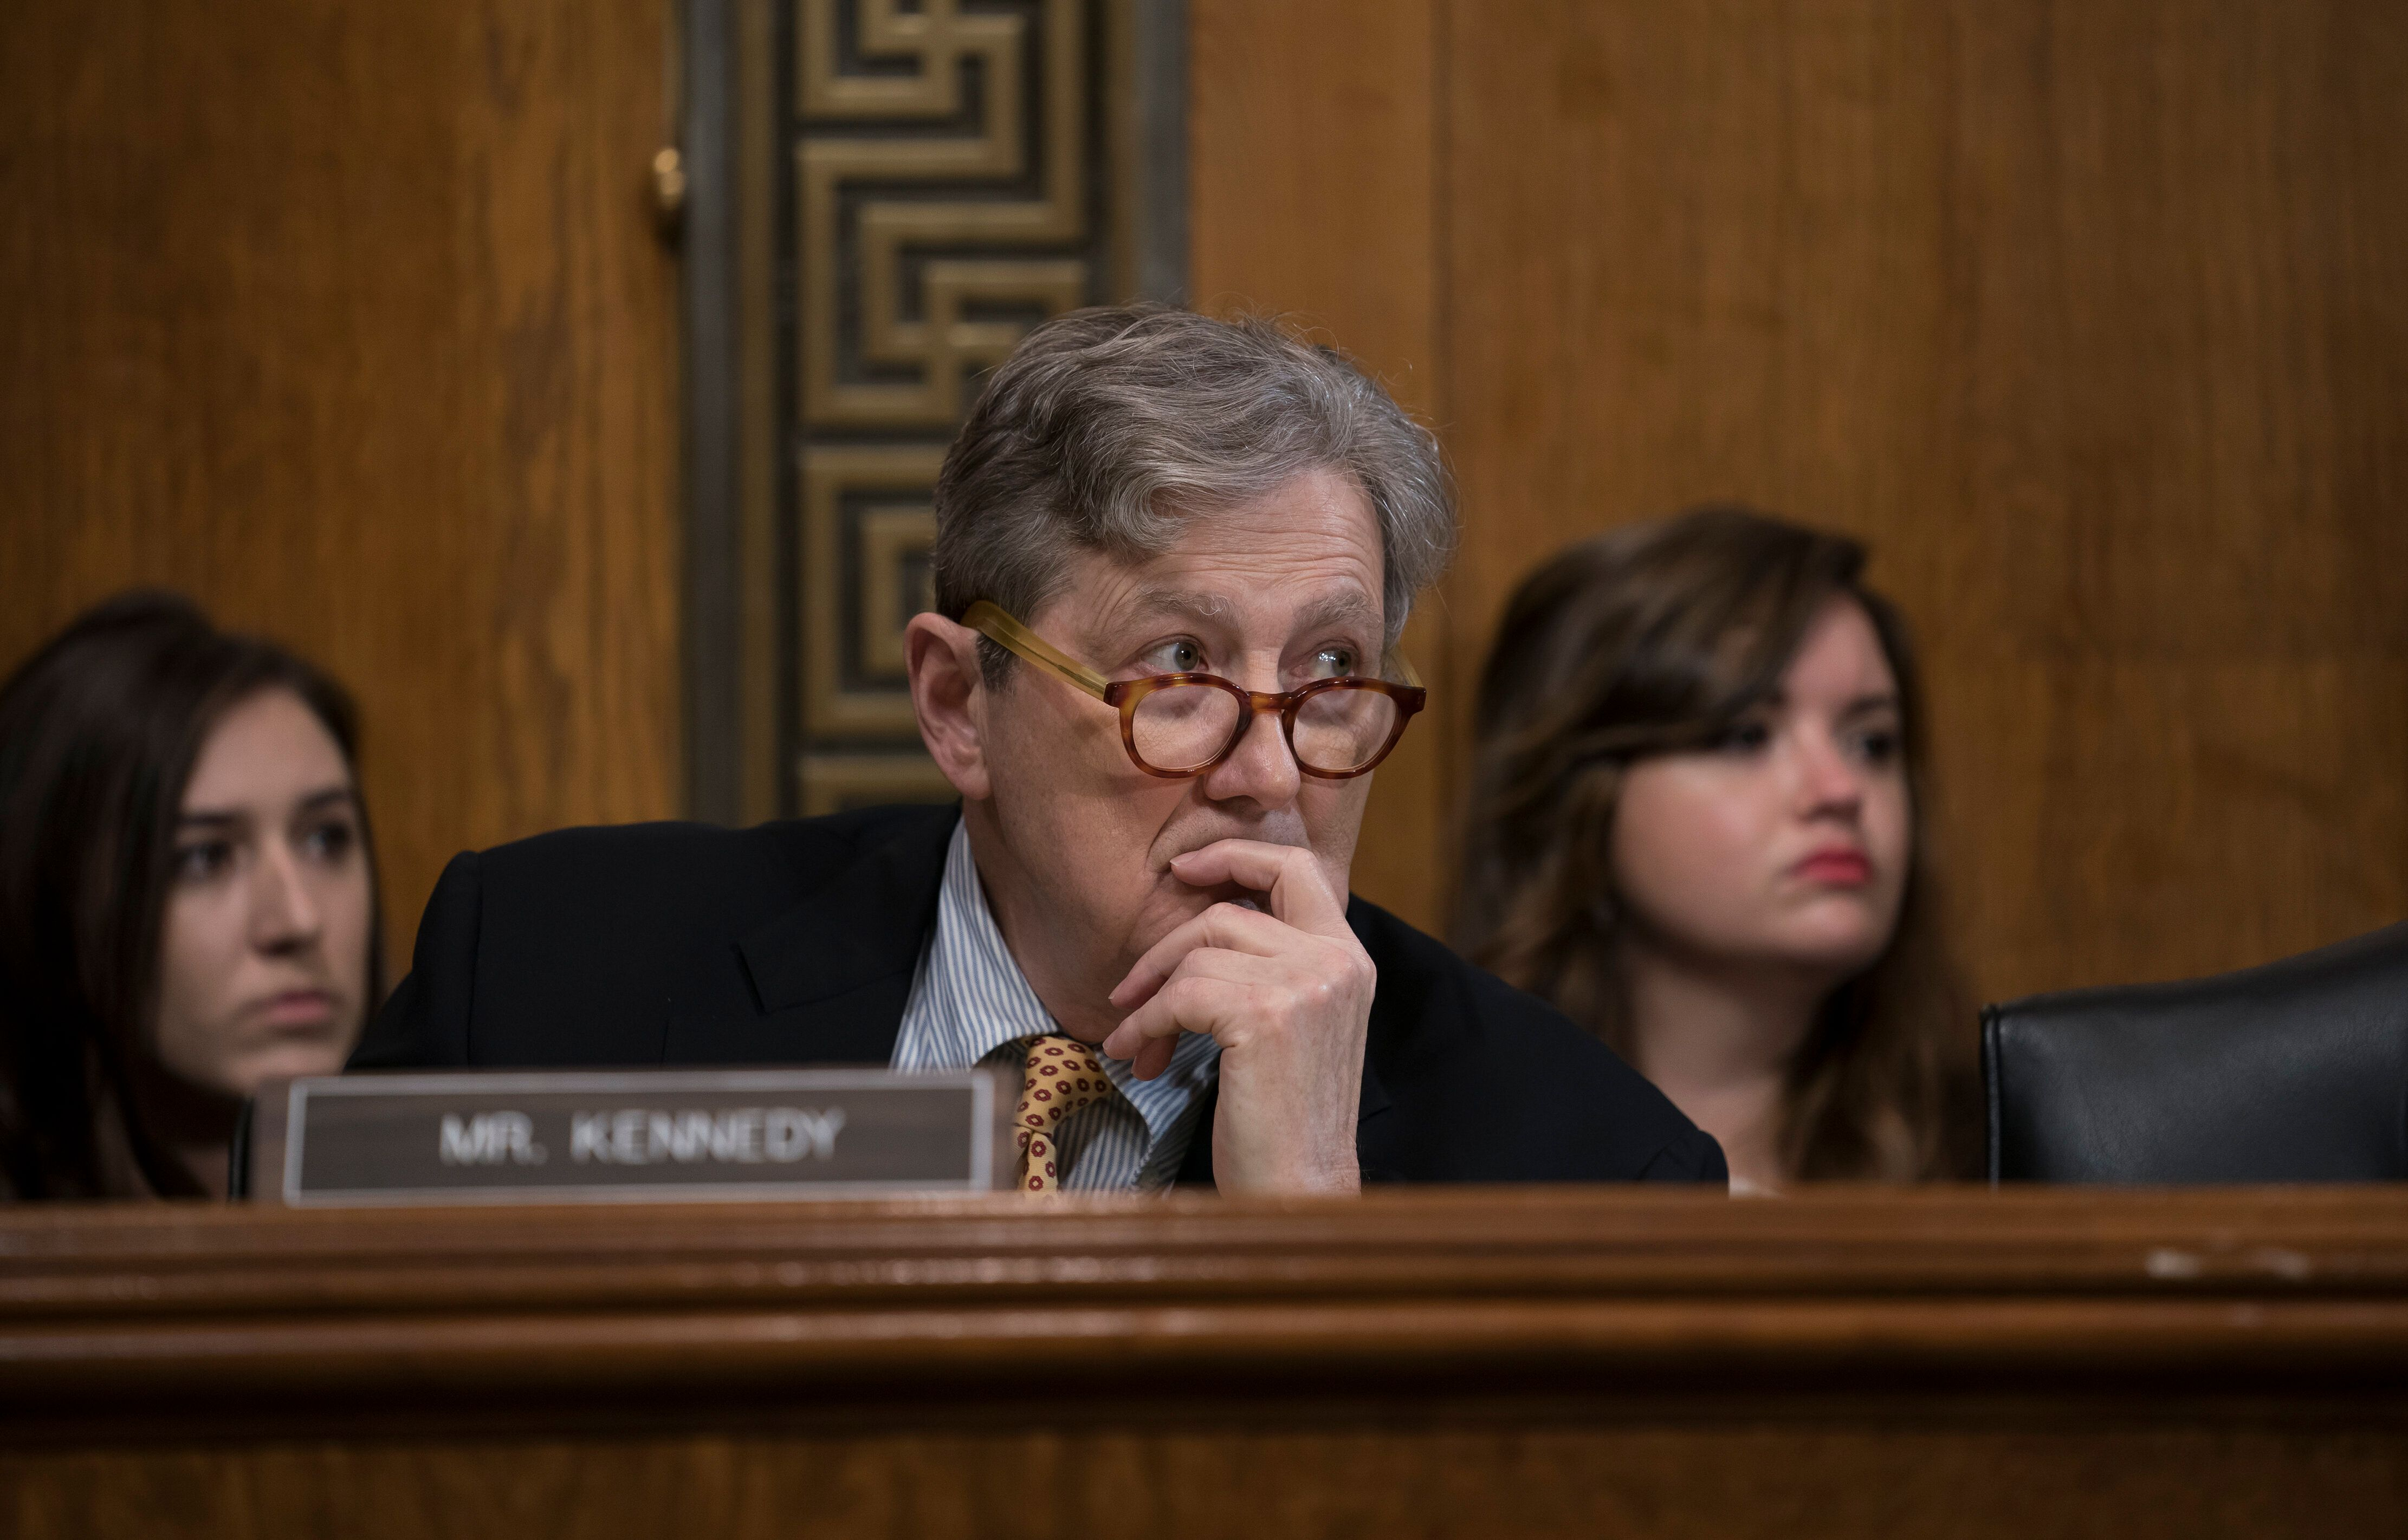 Sen. John Kennedy was not amused by Steven Menashi's refusal to answer his questions.